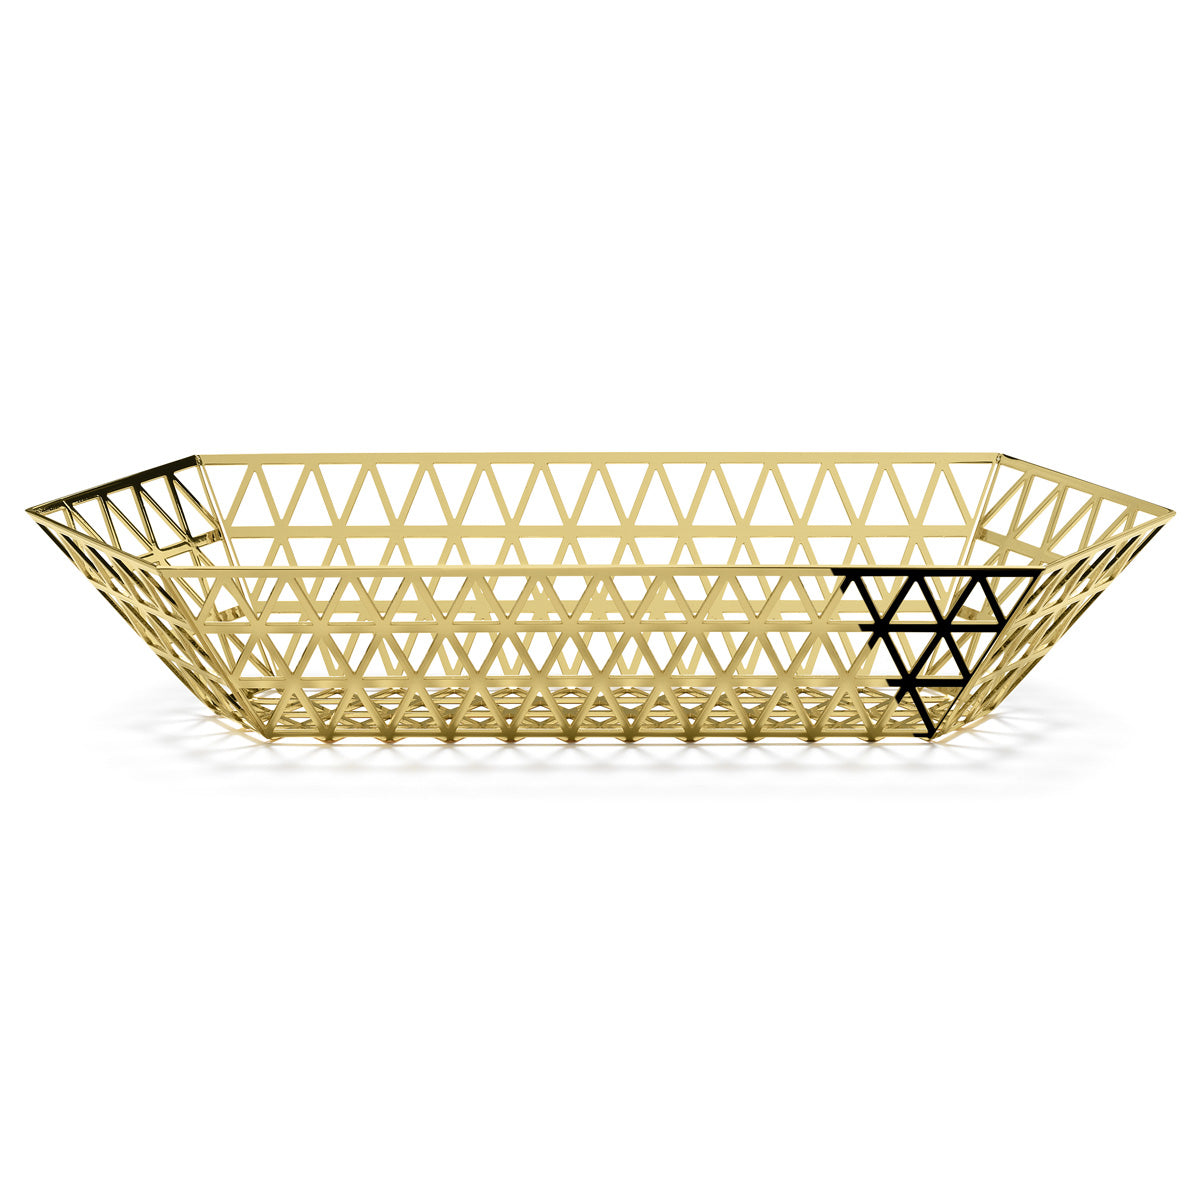 Tip Top Limousine Tray - Ghidini 1961 - Do Shop